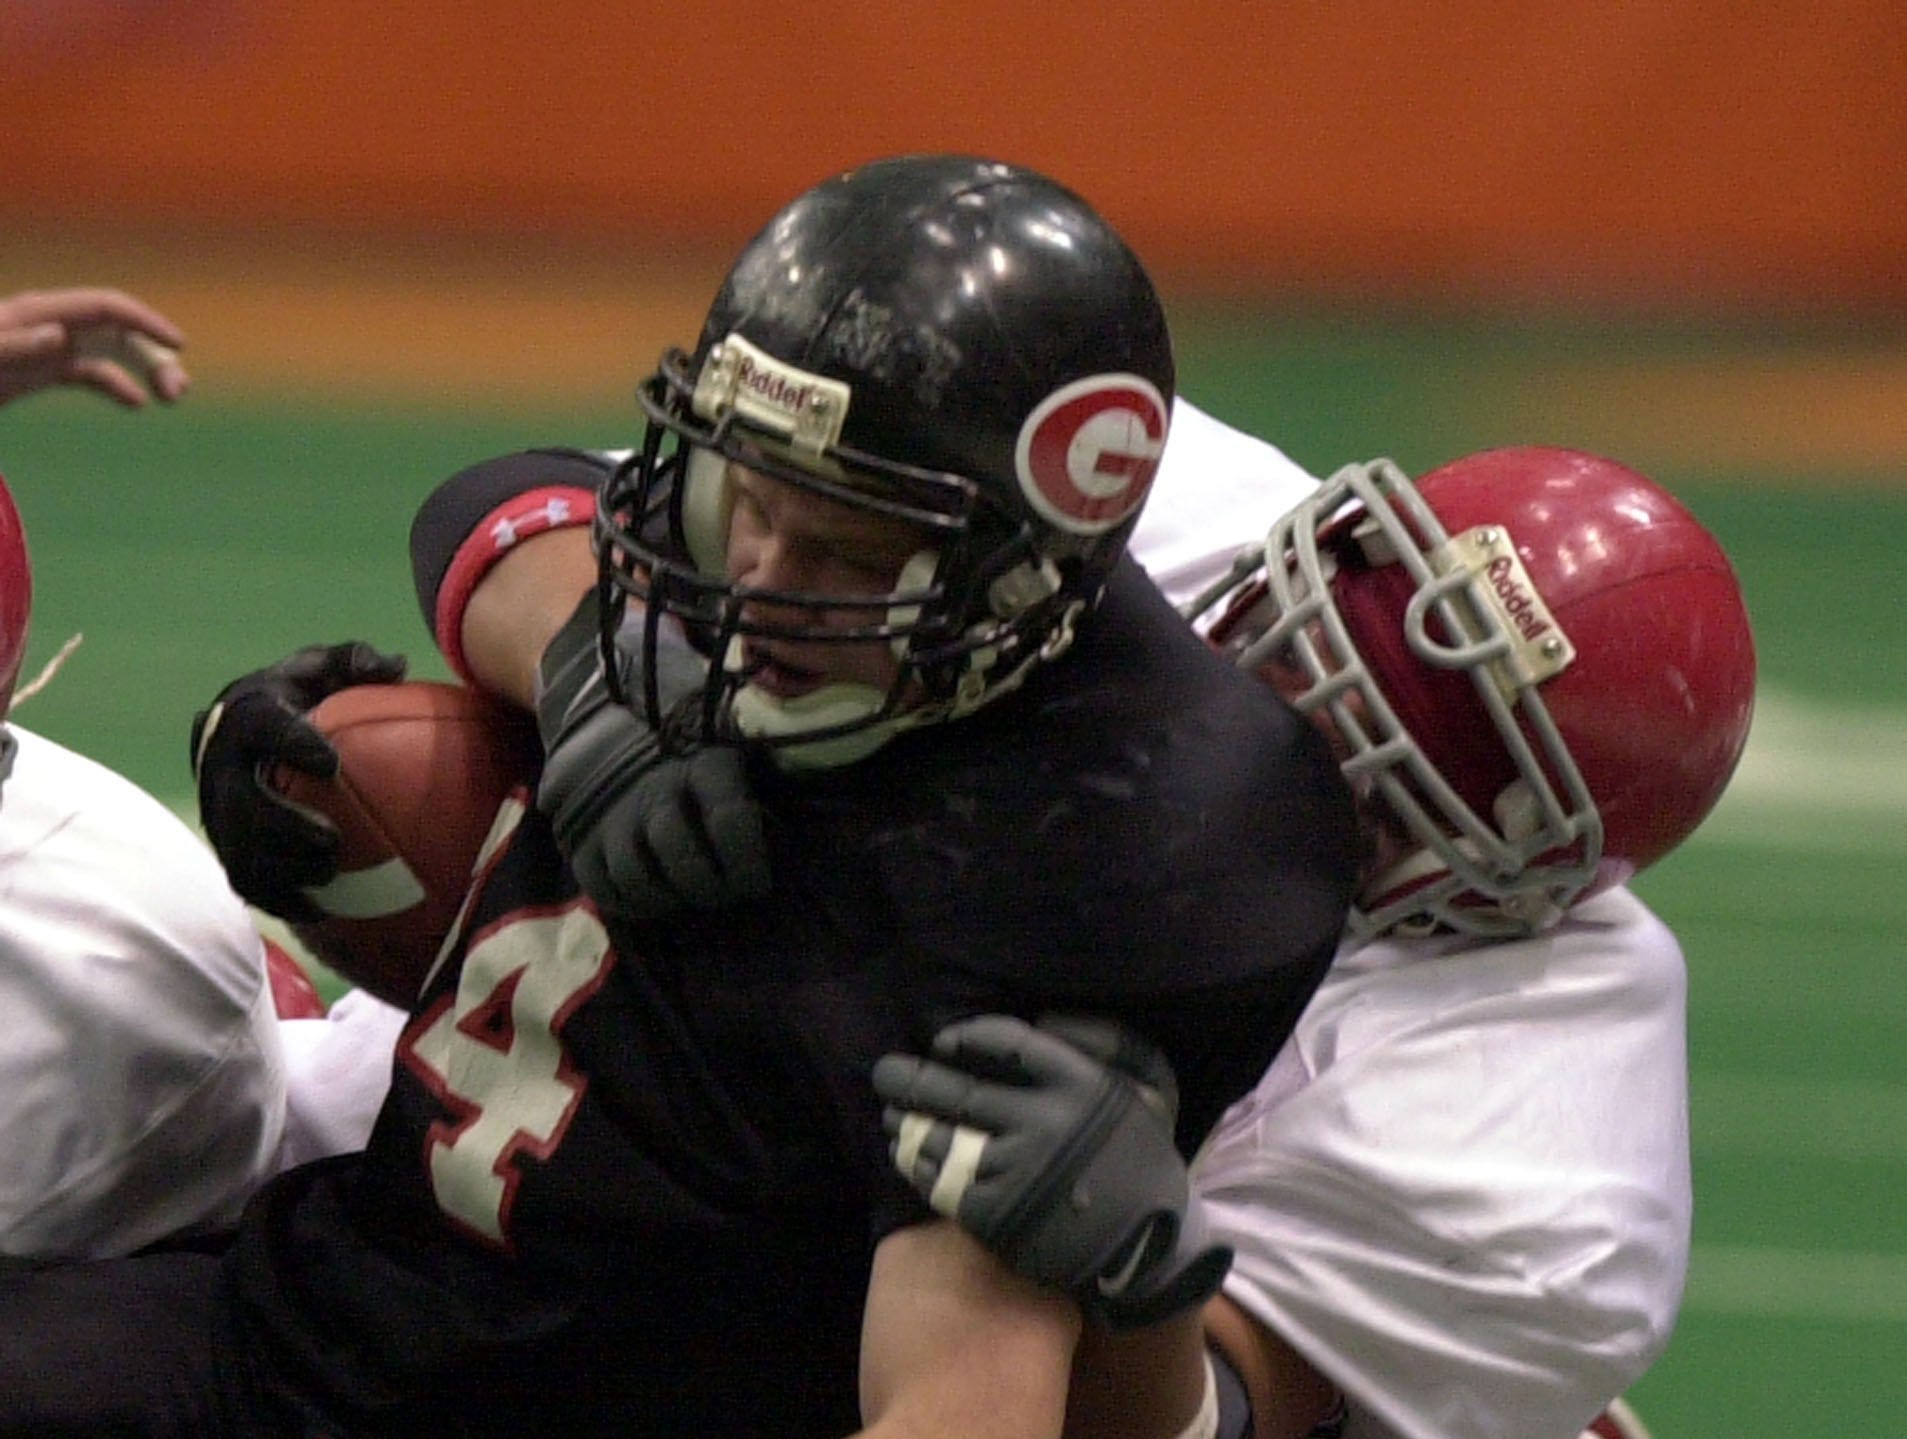 Rye's Steve Ramsey is brought down by Chenango Forks Jason Chier during the Class B state championship game between Rye High School and Chenango Forks High School, Nov. 29, 2003 at the Carrier Dome in Syracuse, N.Y.